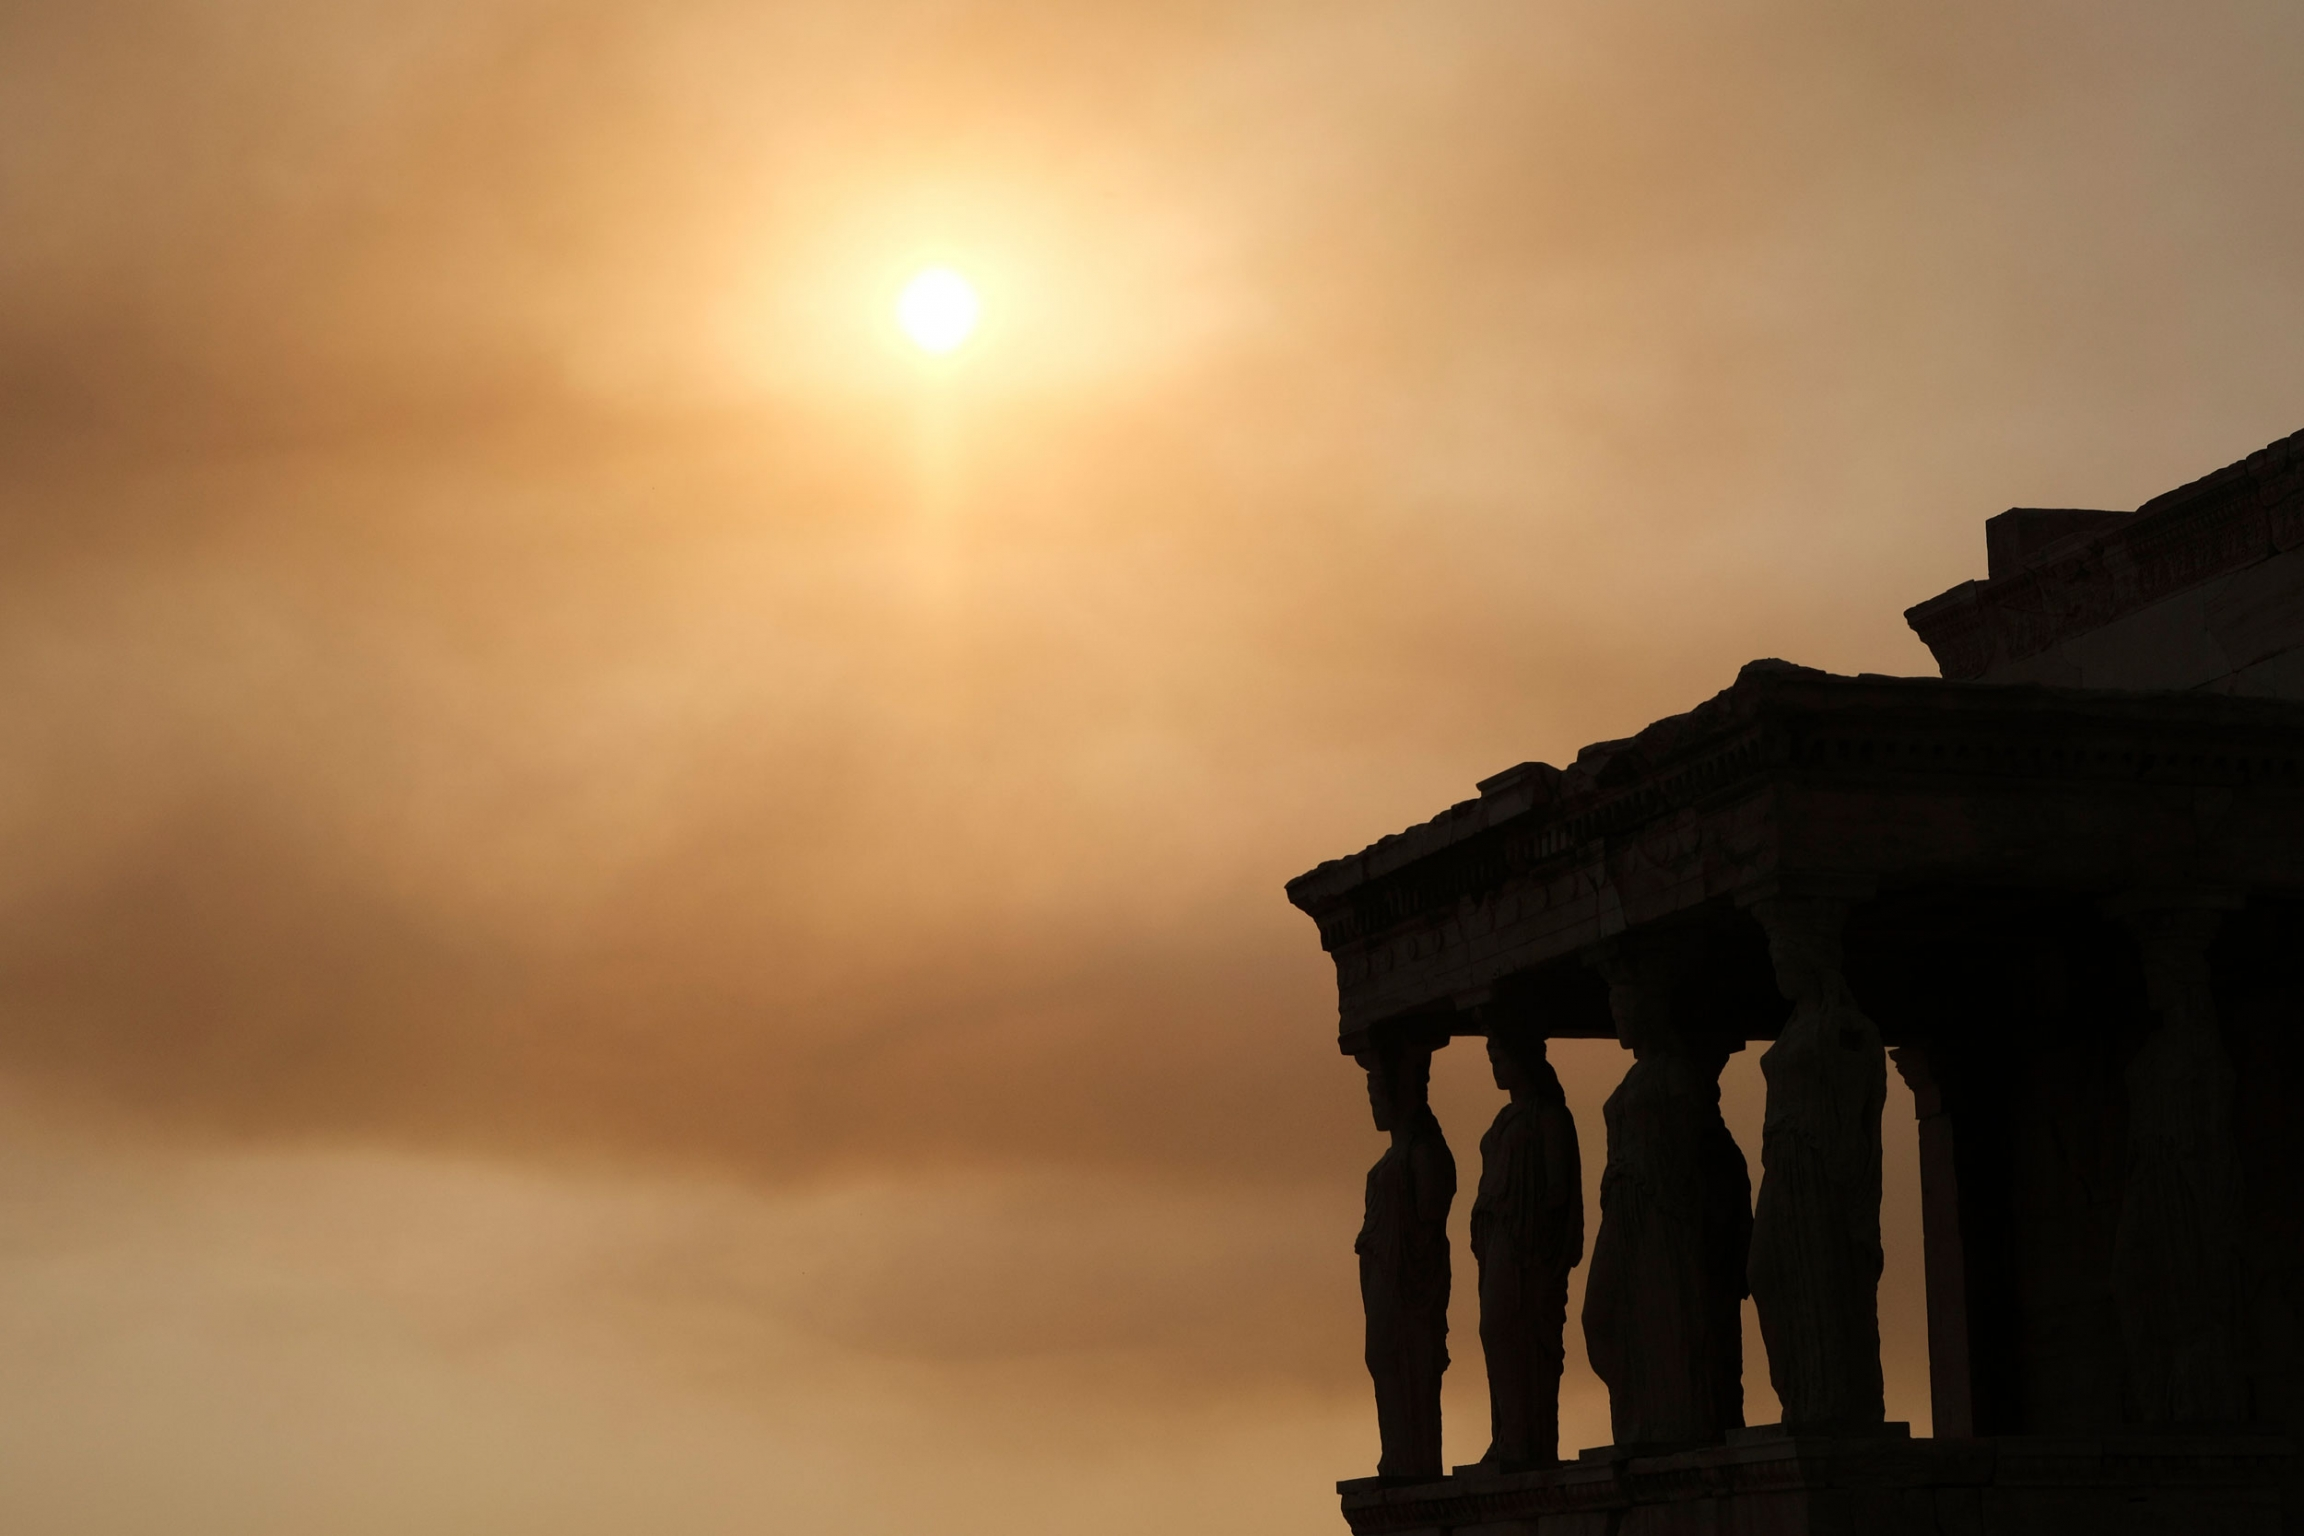 The columns of the Acropolis are shown in shadown with the sun in the distance blocked by smoke clouds.